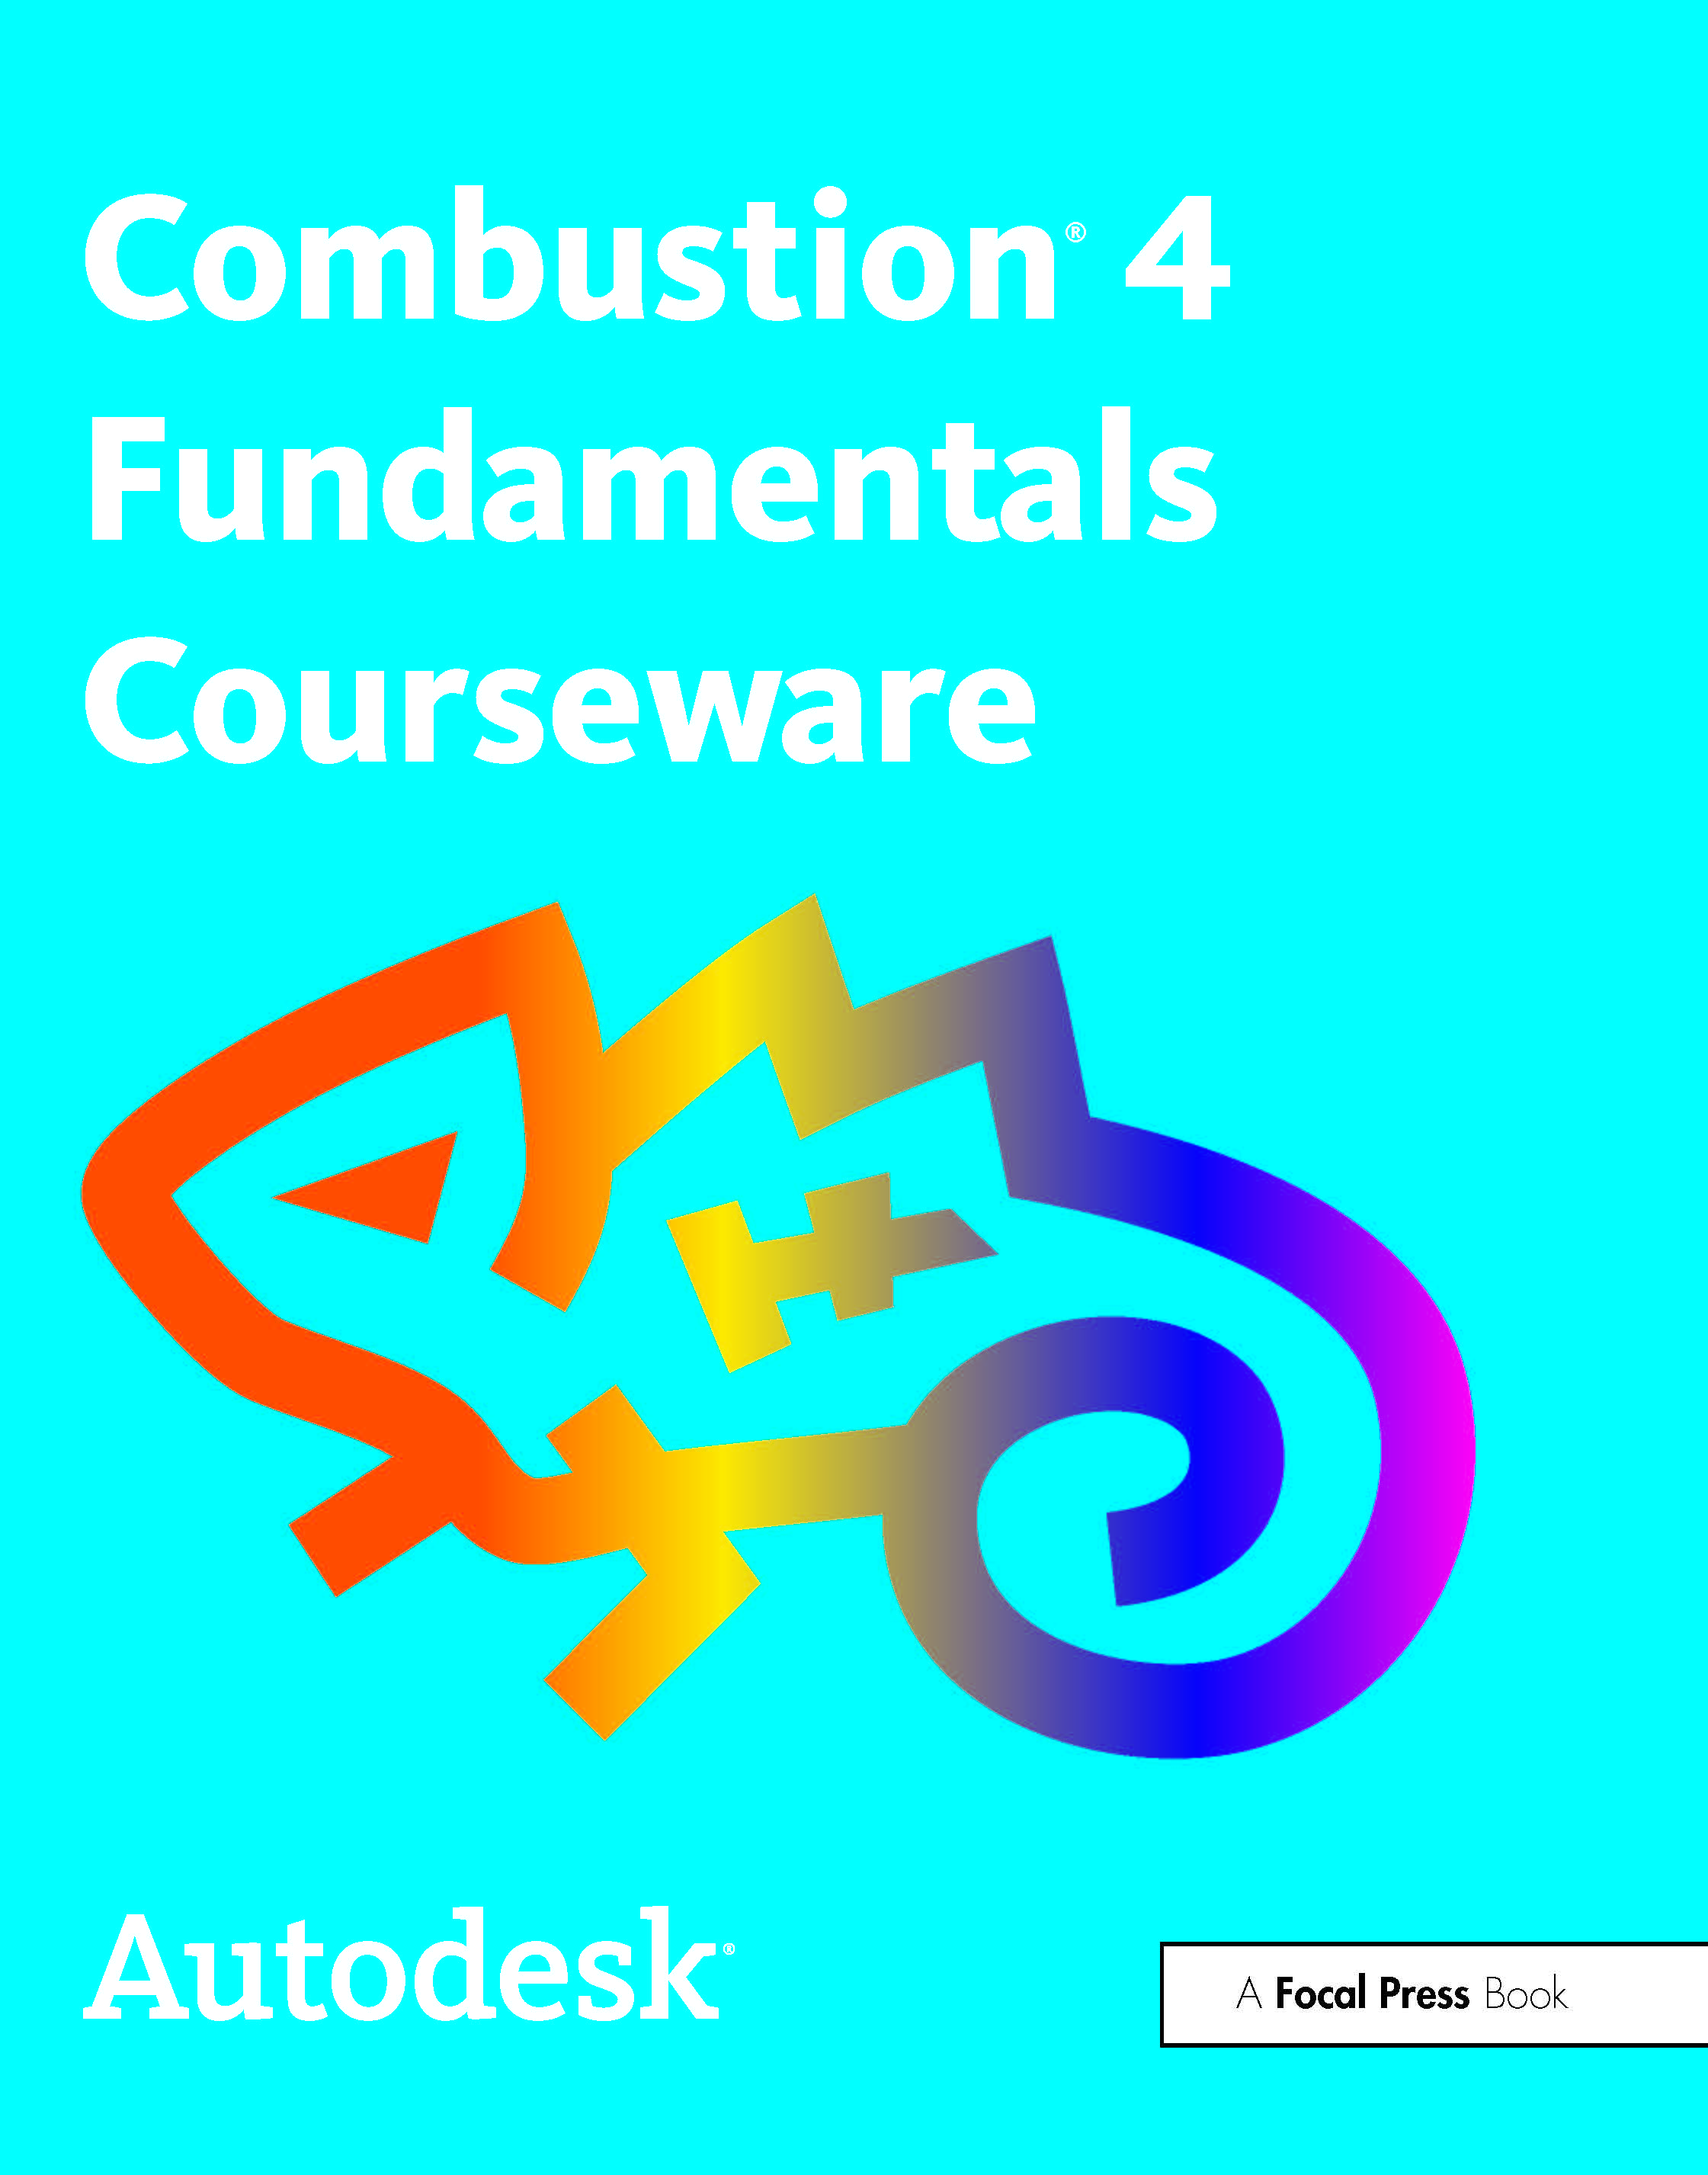 Autodesk Combustion 4 Fundamentals Courseware book cover